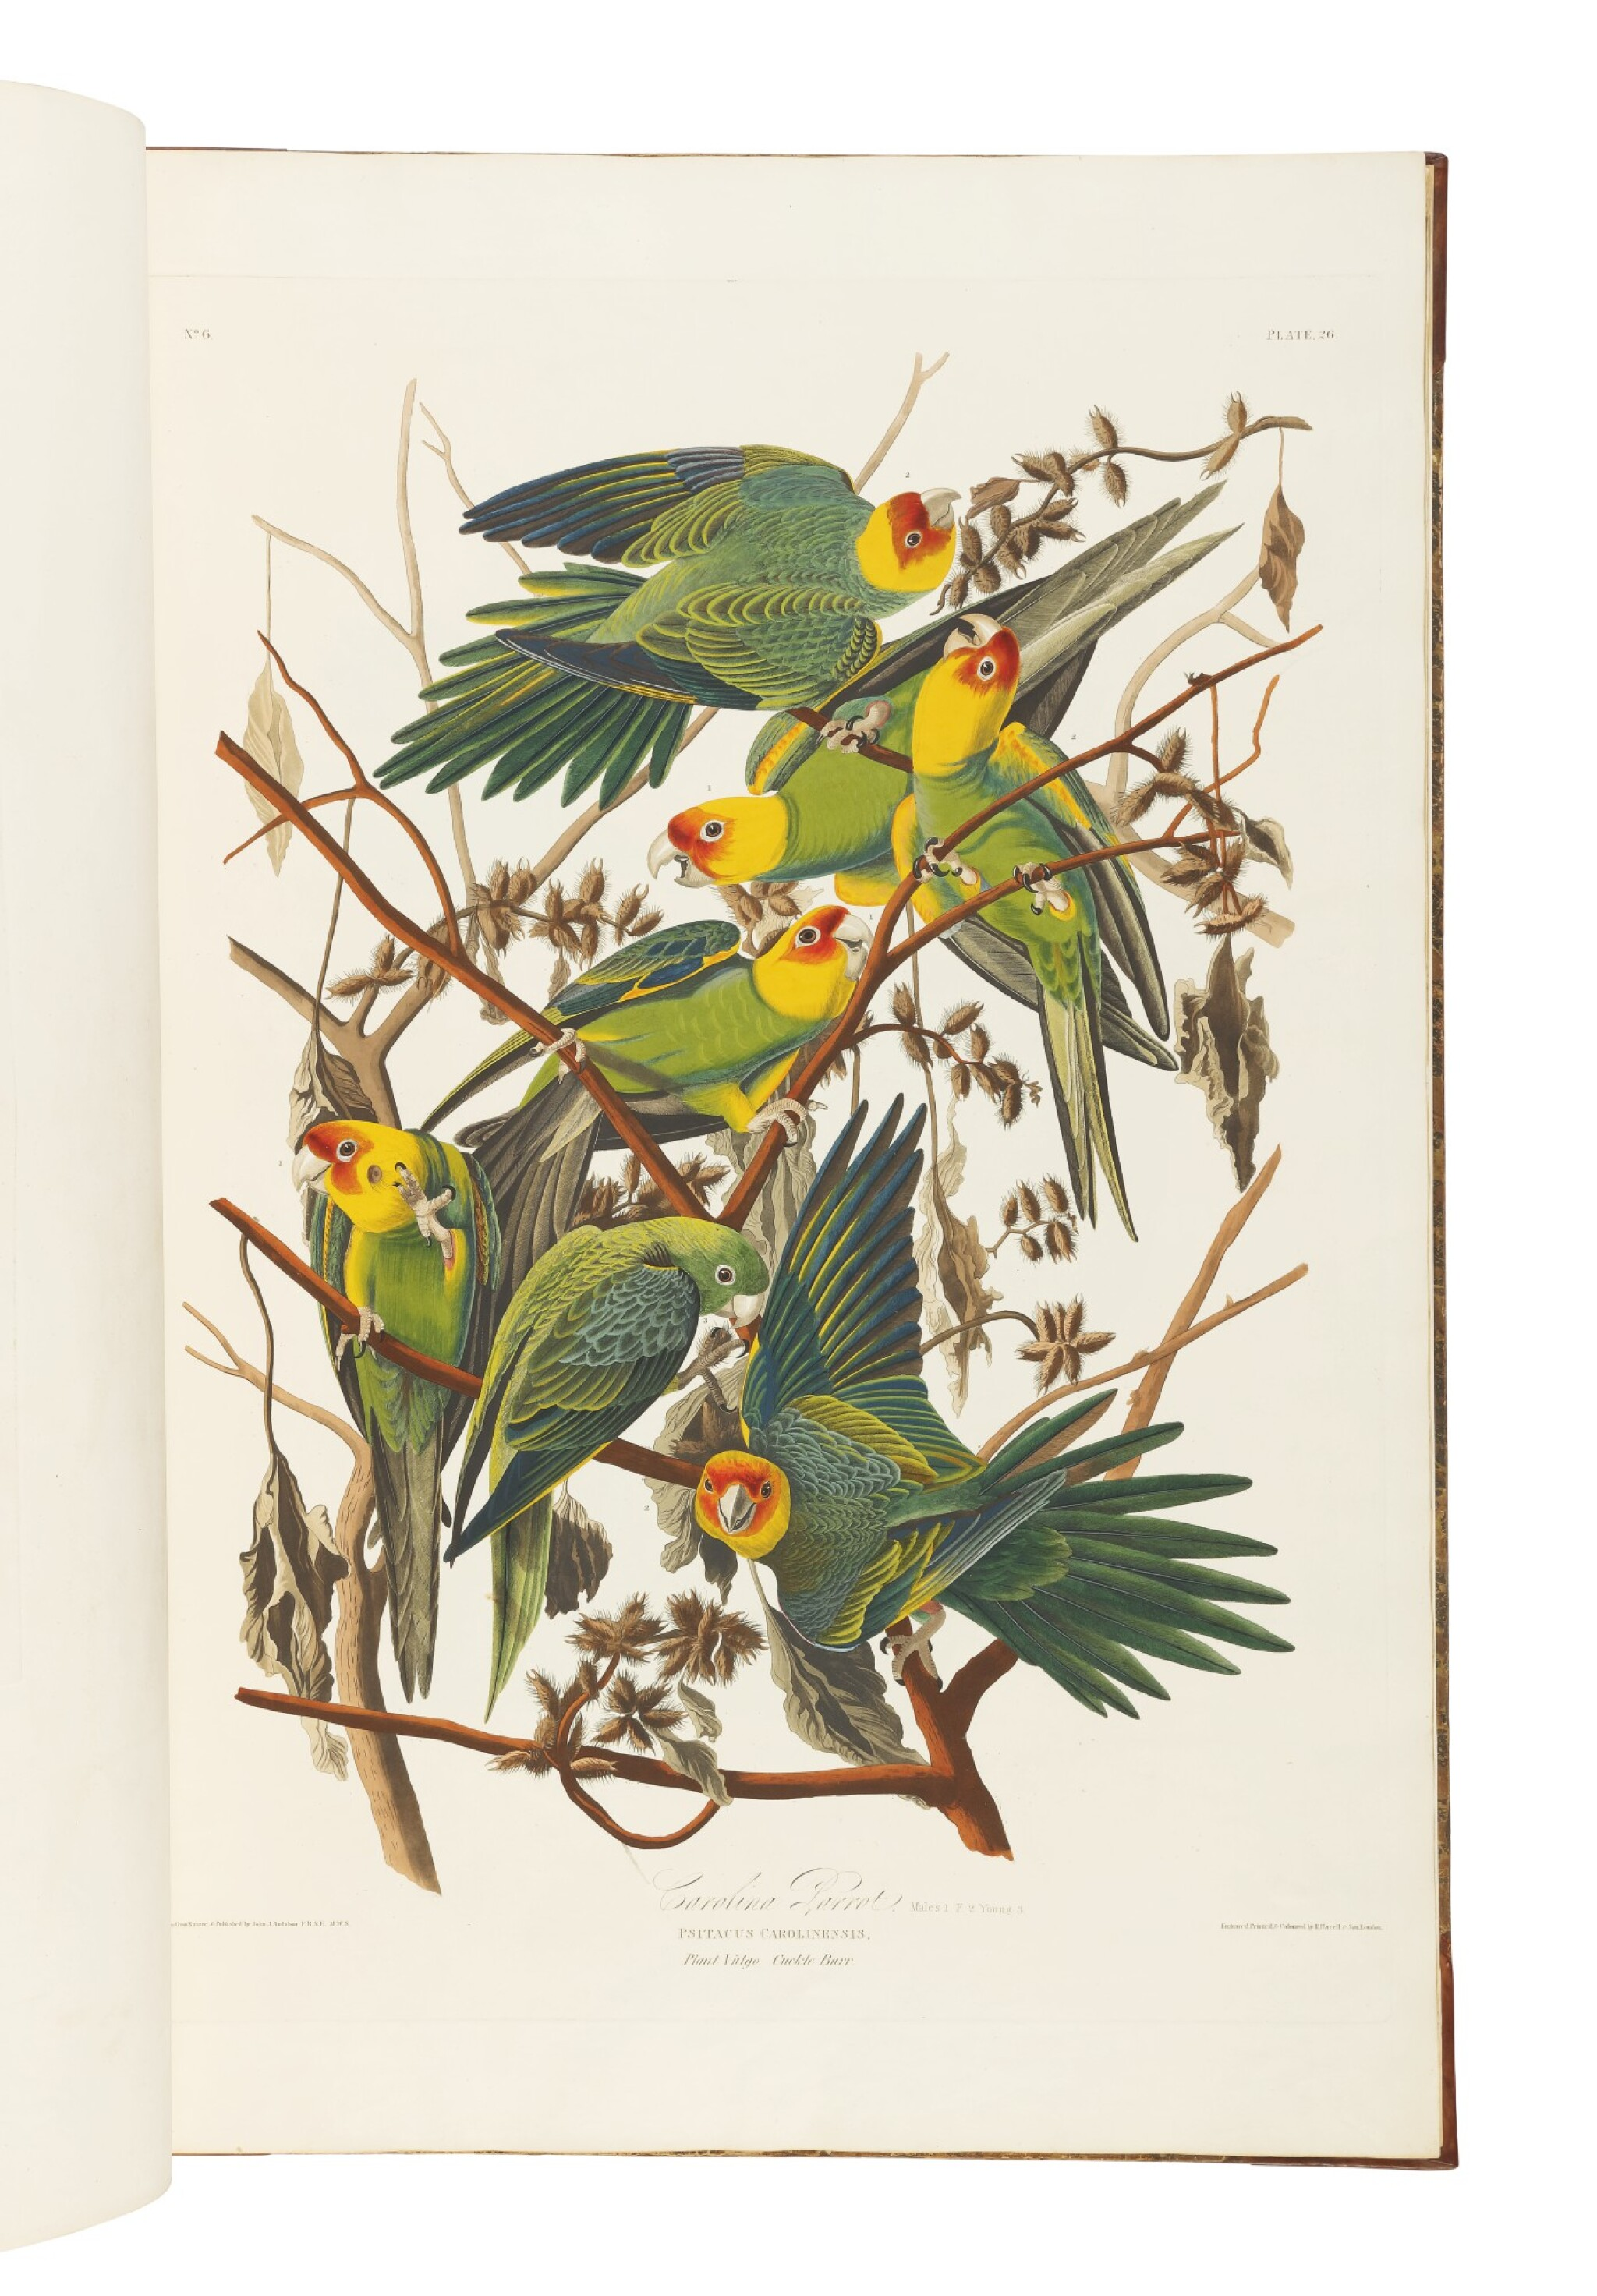 JOHN JAMES AUDUBON   The Birds of America; from Original Drawings by John James Audubon. London: Published by the Author, 1827–1838